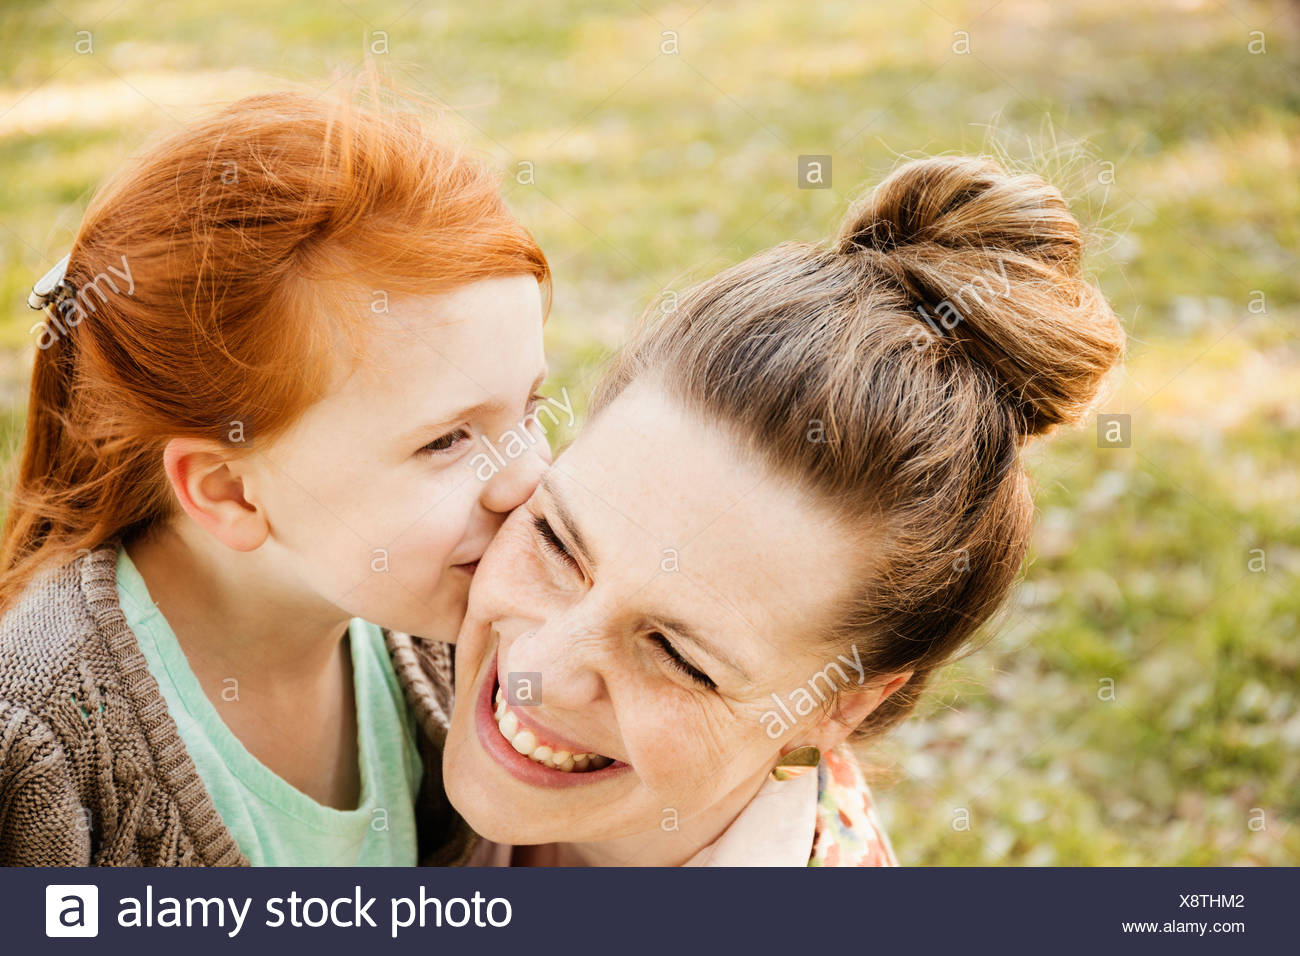 Portrait of smiling mid adult mother and daughter in park - Stock Image